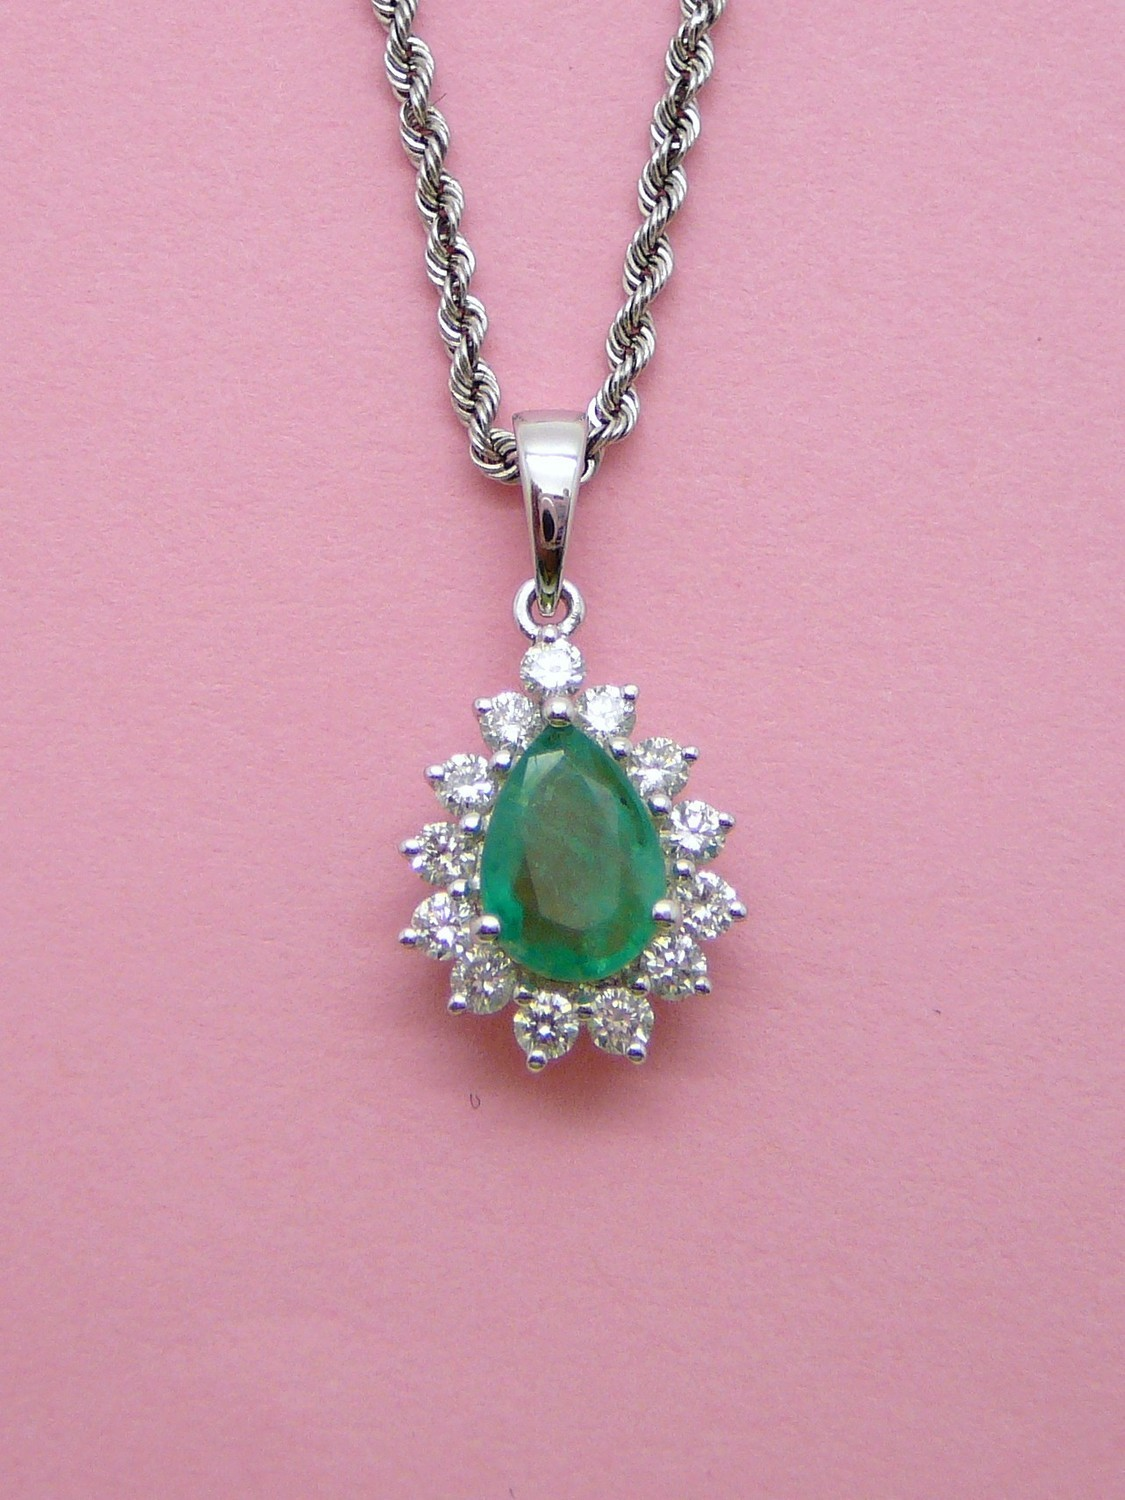 EMERALD Diamond Tear Drop Pendant. Chain Sold Separately